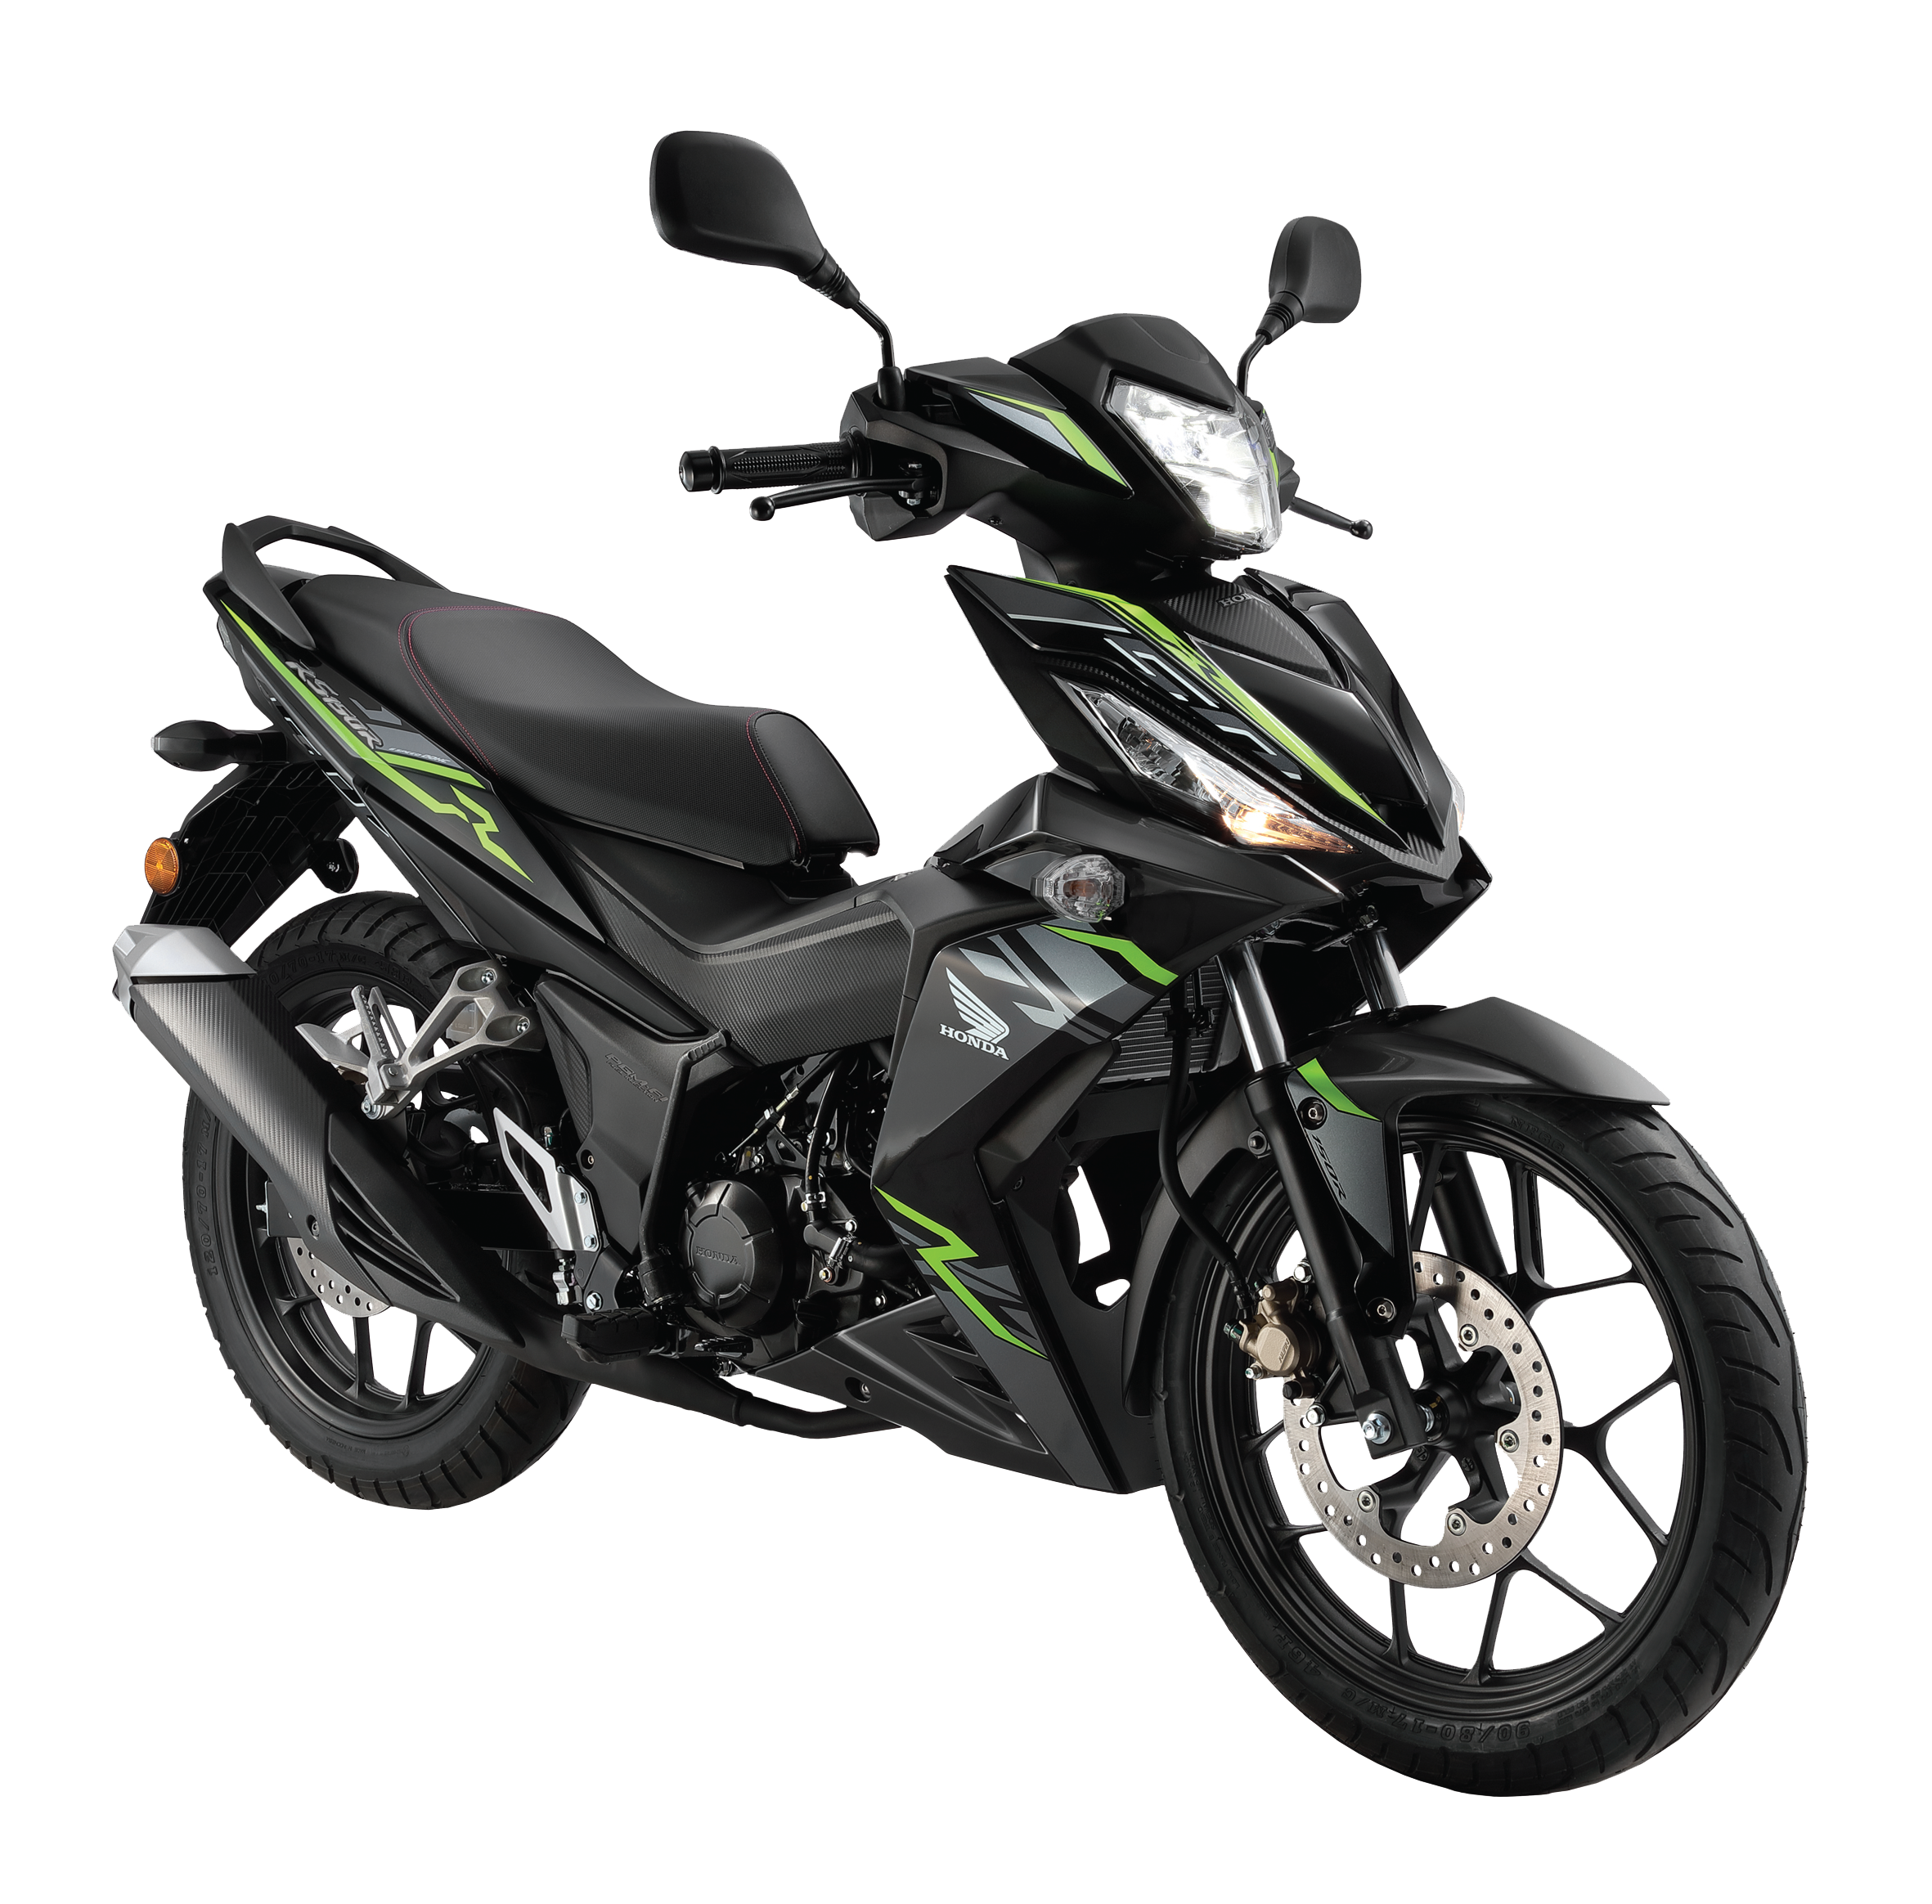 Honda drawing customized. Boon siew unveils rs